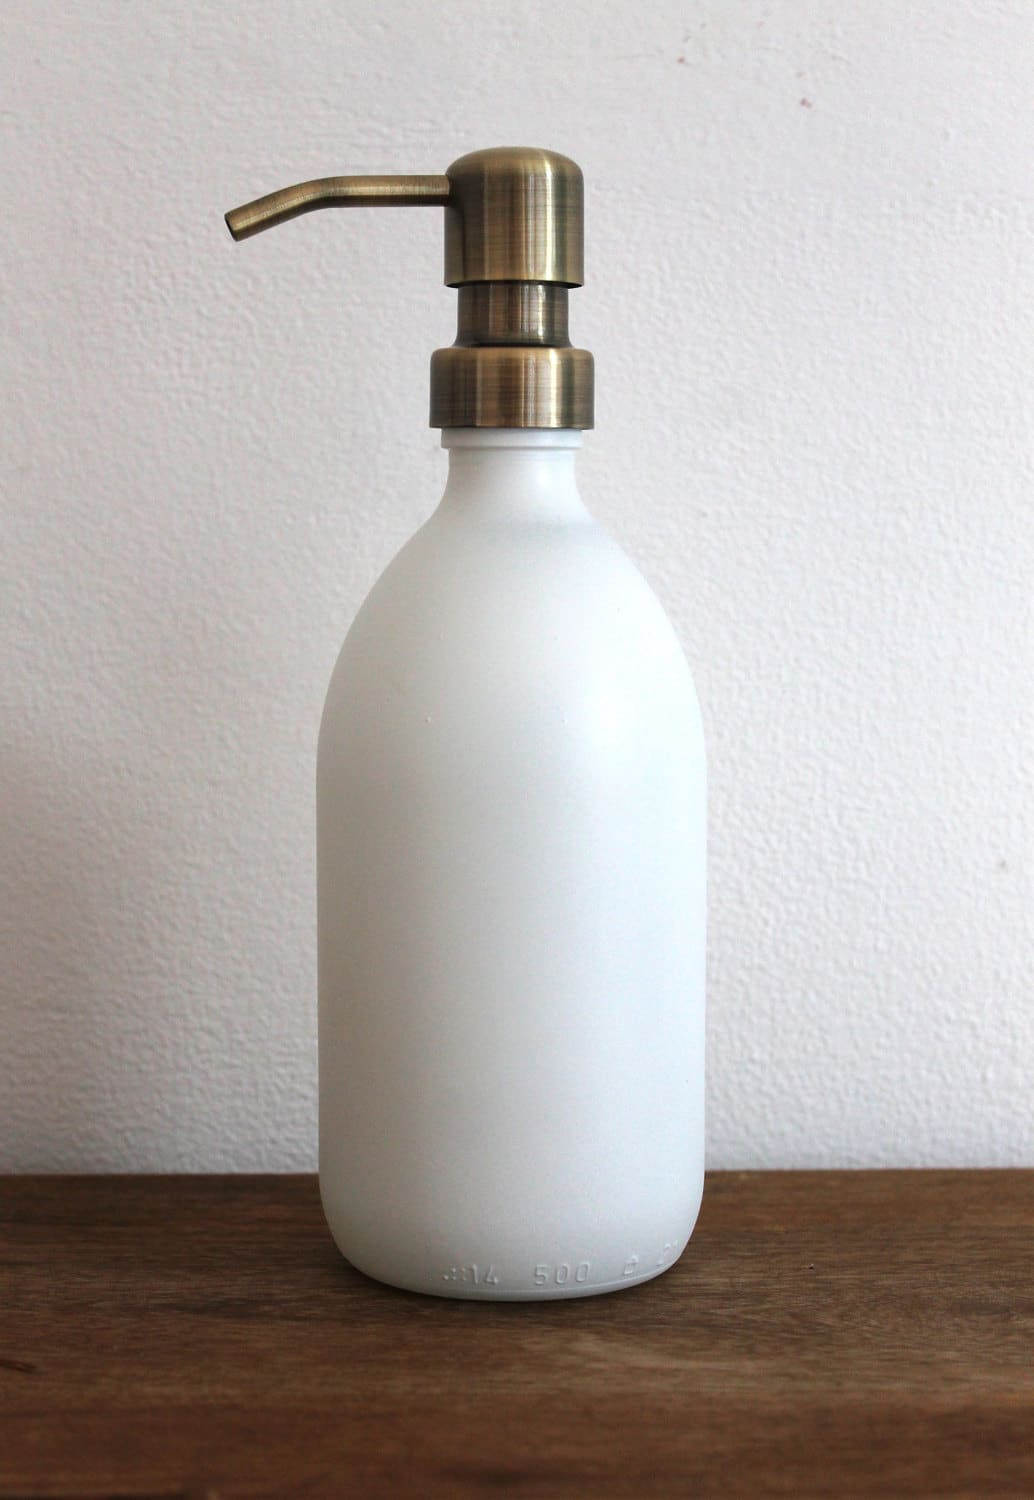 Metal Soap Dispenser Pump Matt White Glass Soap Dispenser Bottle With Stainless